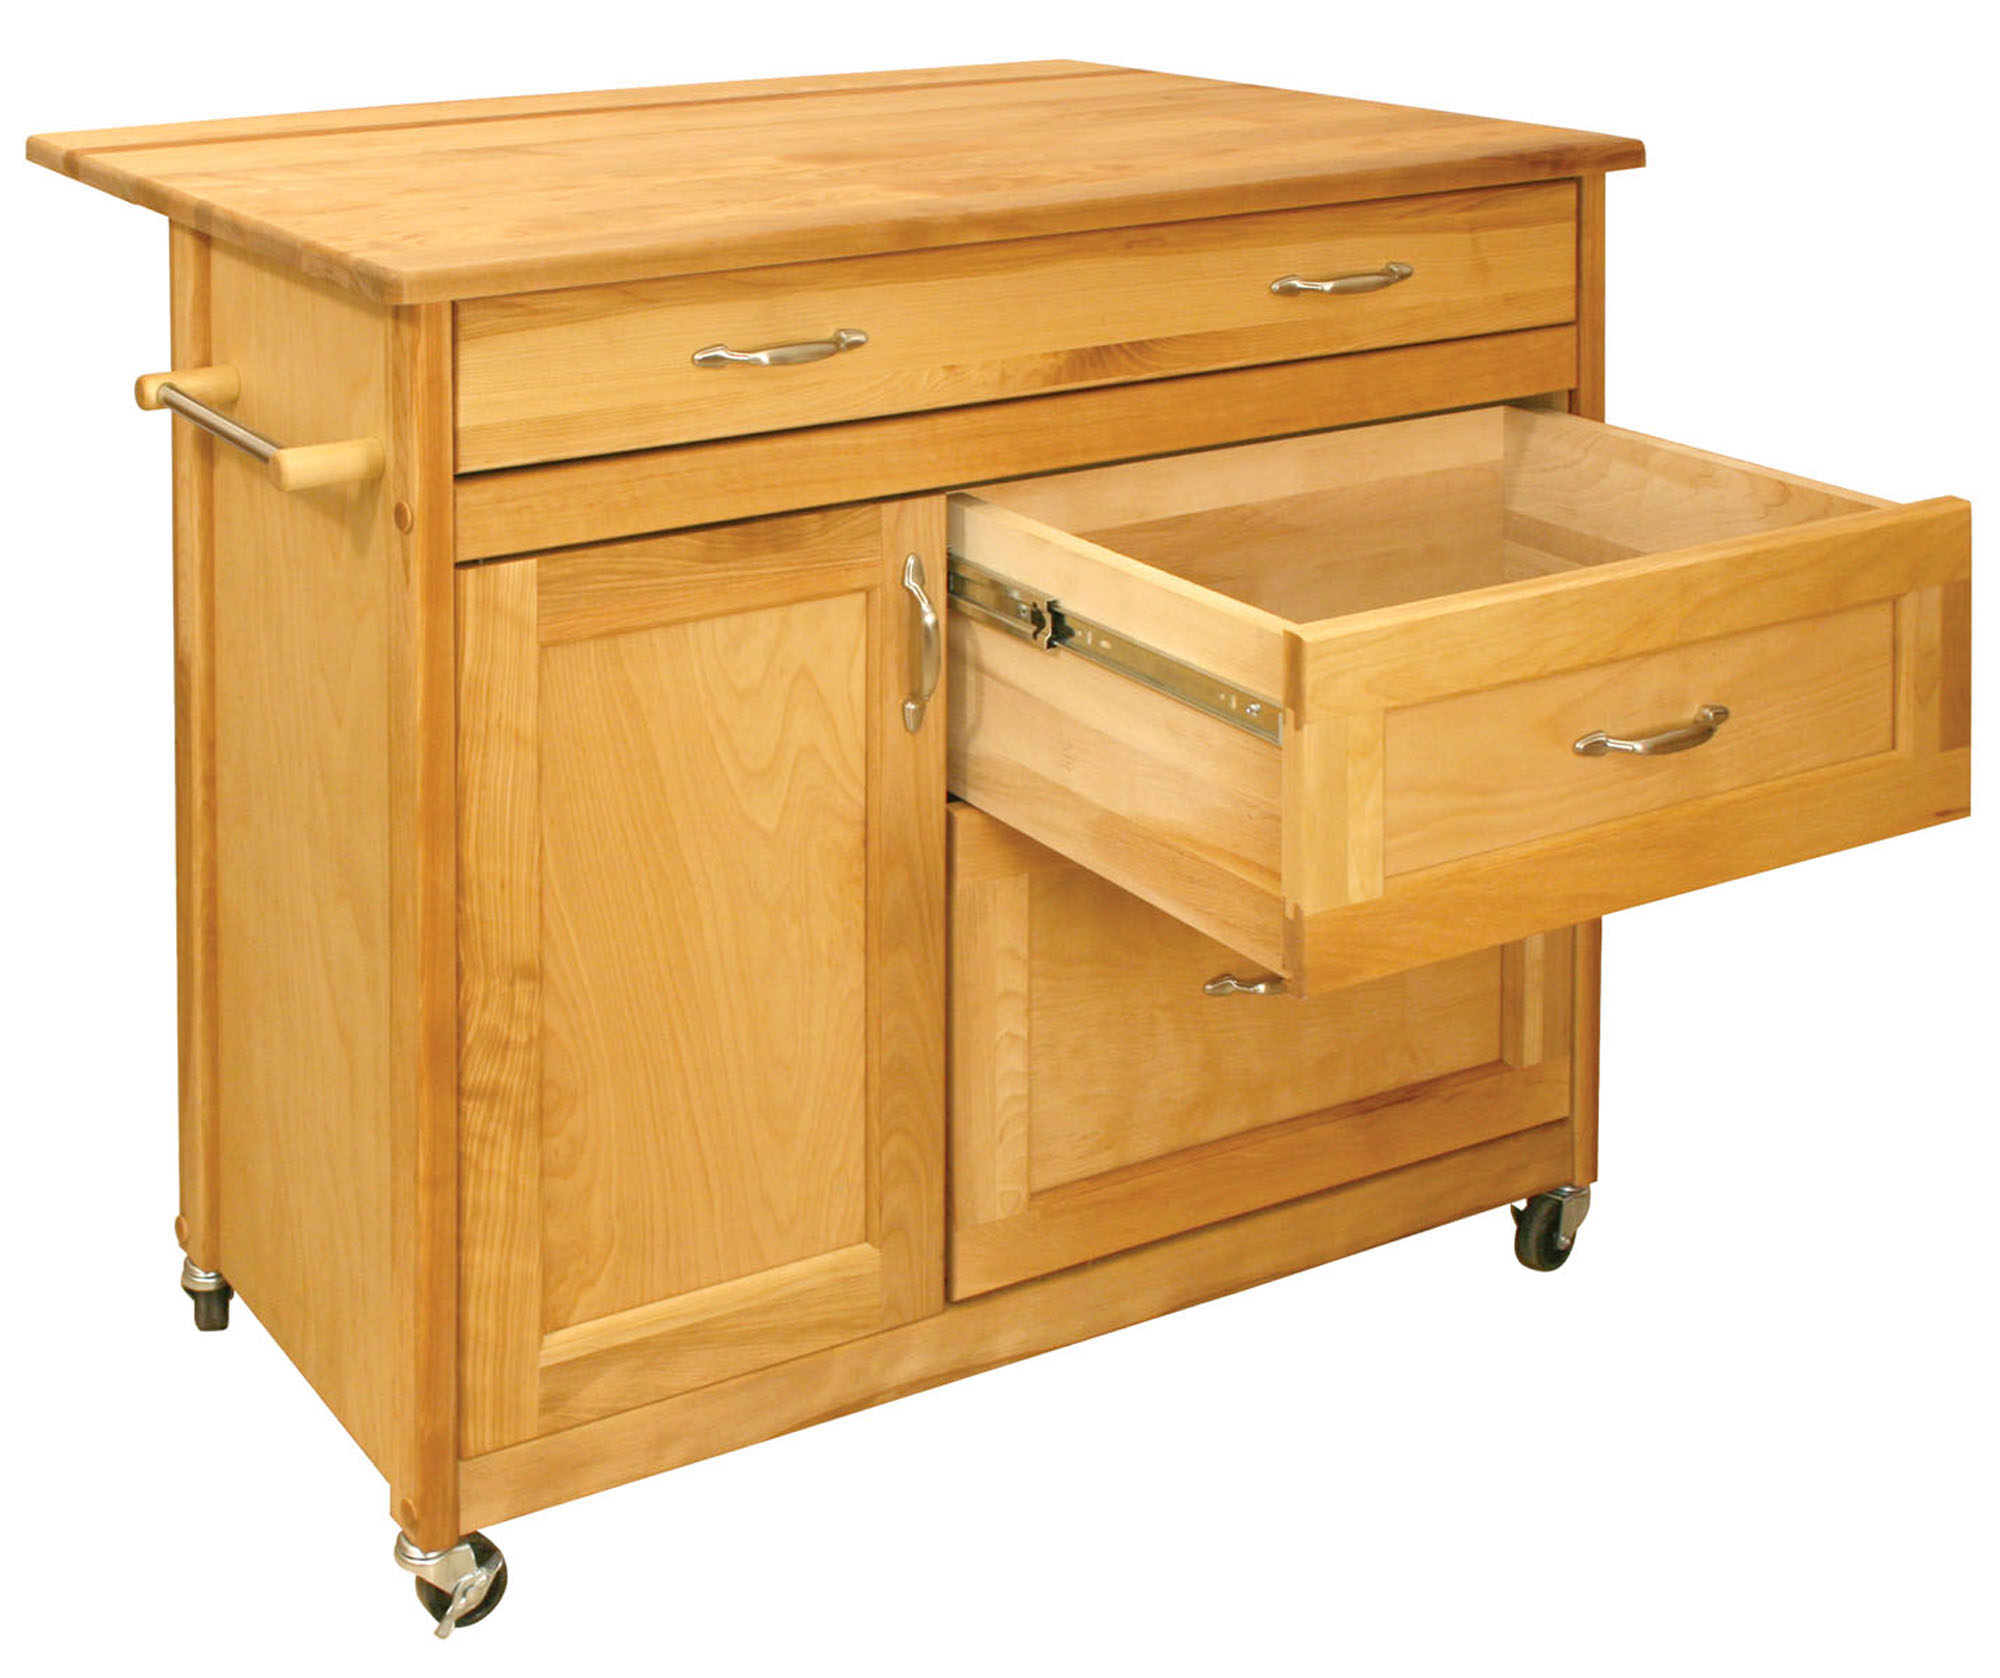 catskill craftsmen mid sized drawer island model 1521